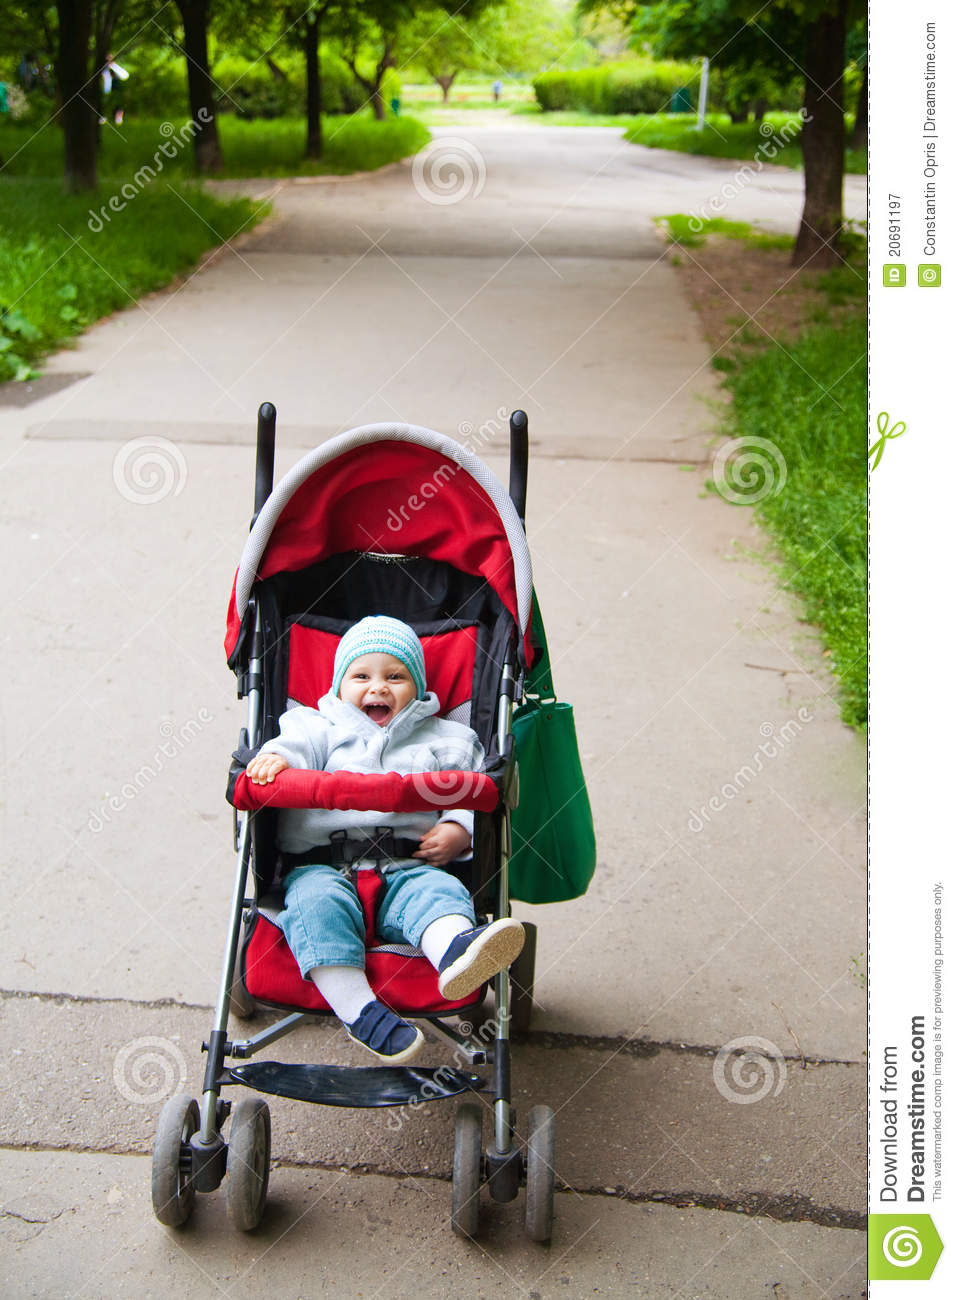 Happy Baby In Stroller Royalty Free Stock Photography - Image ...